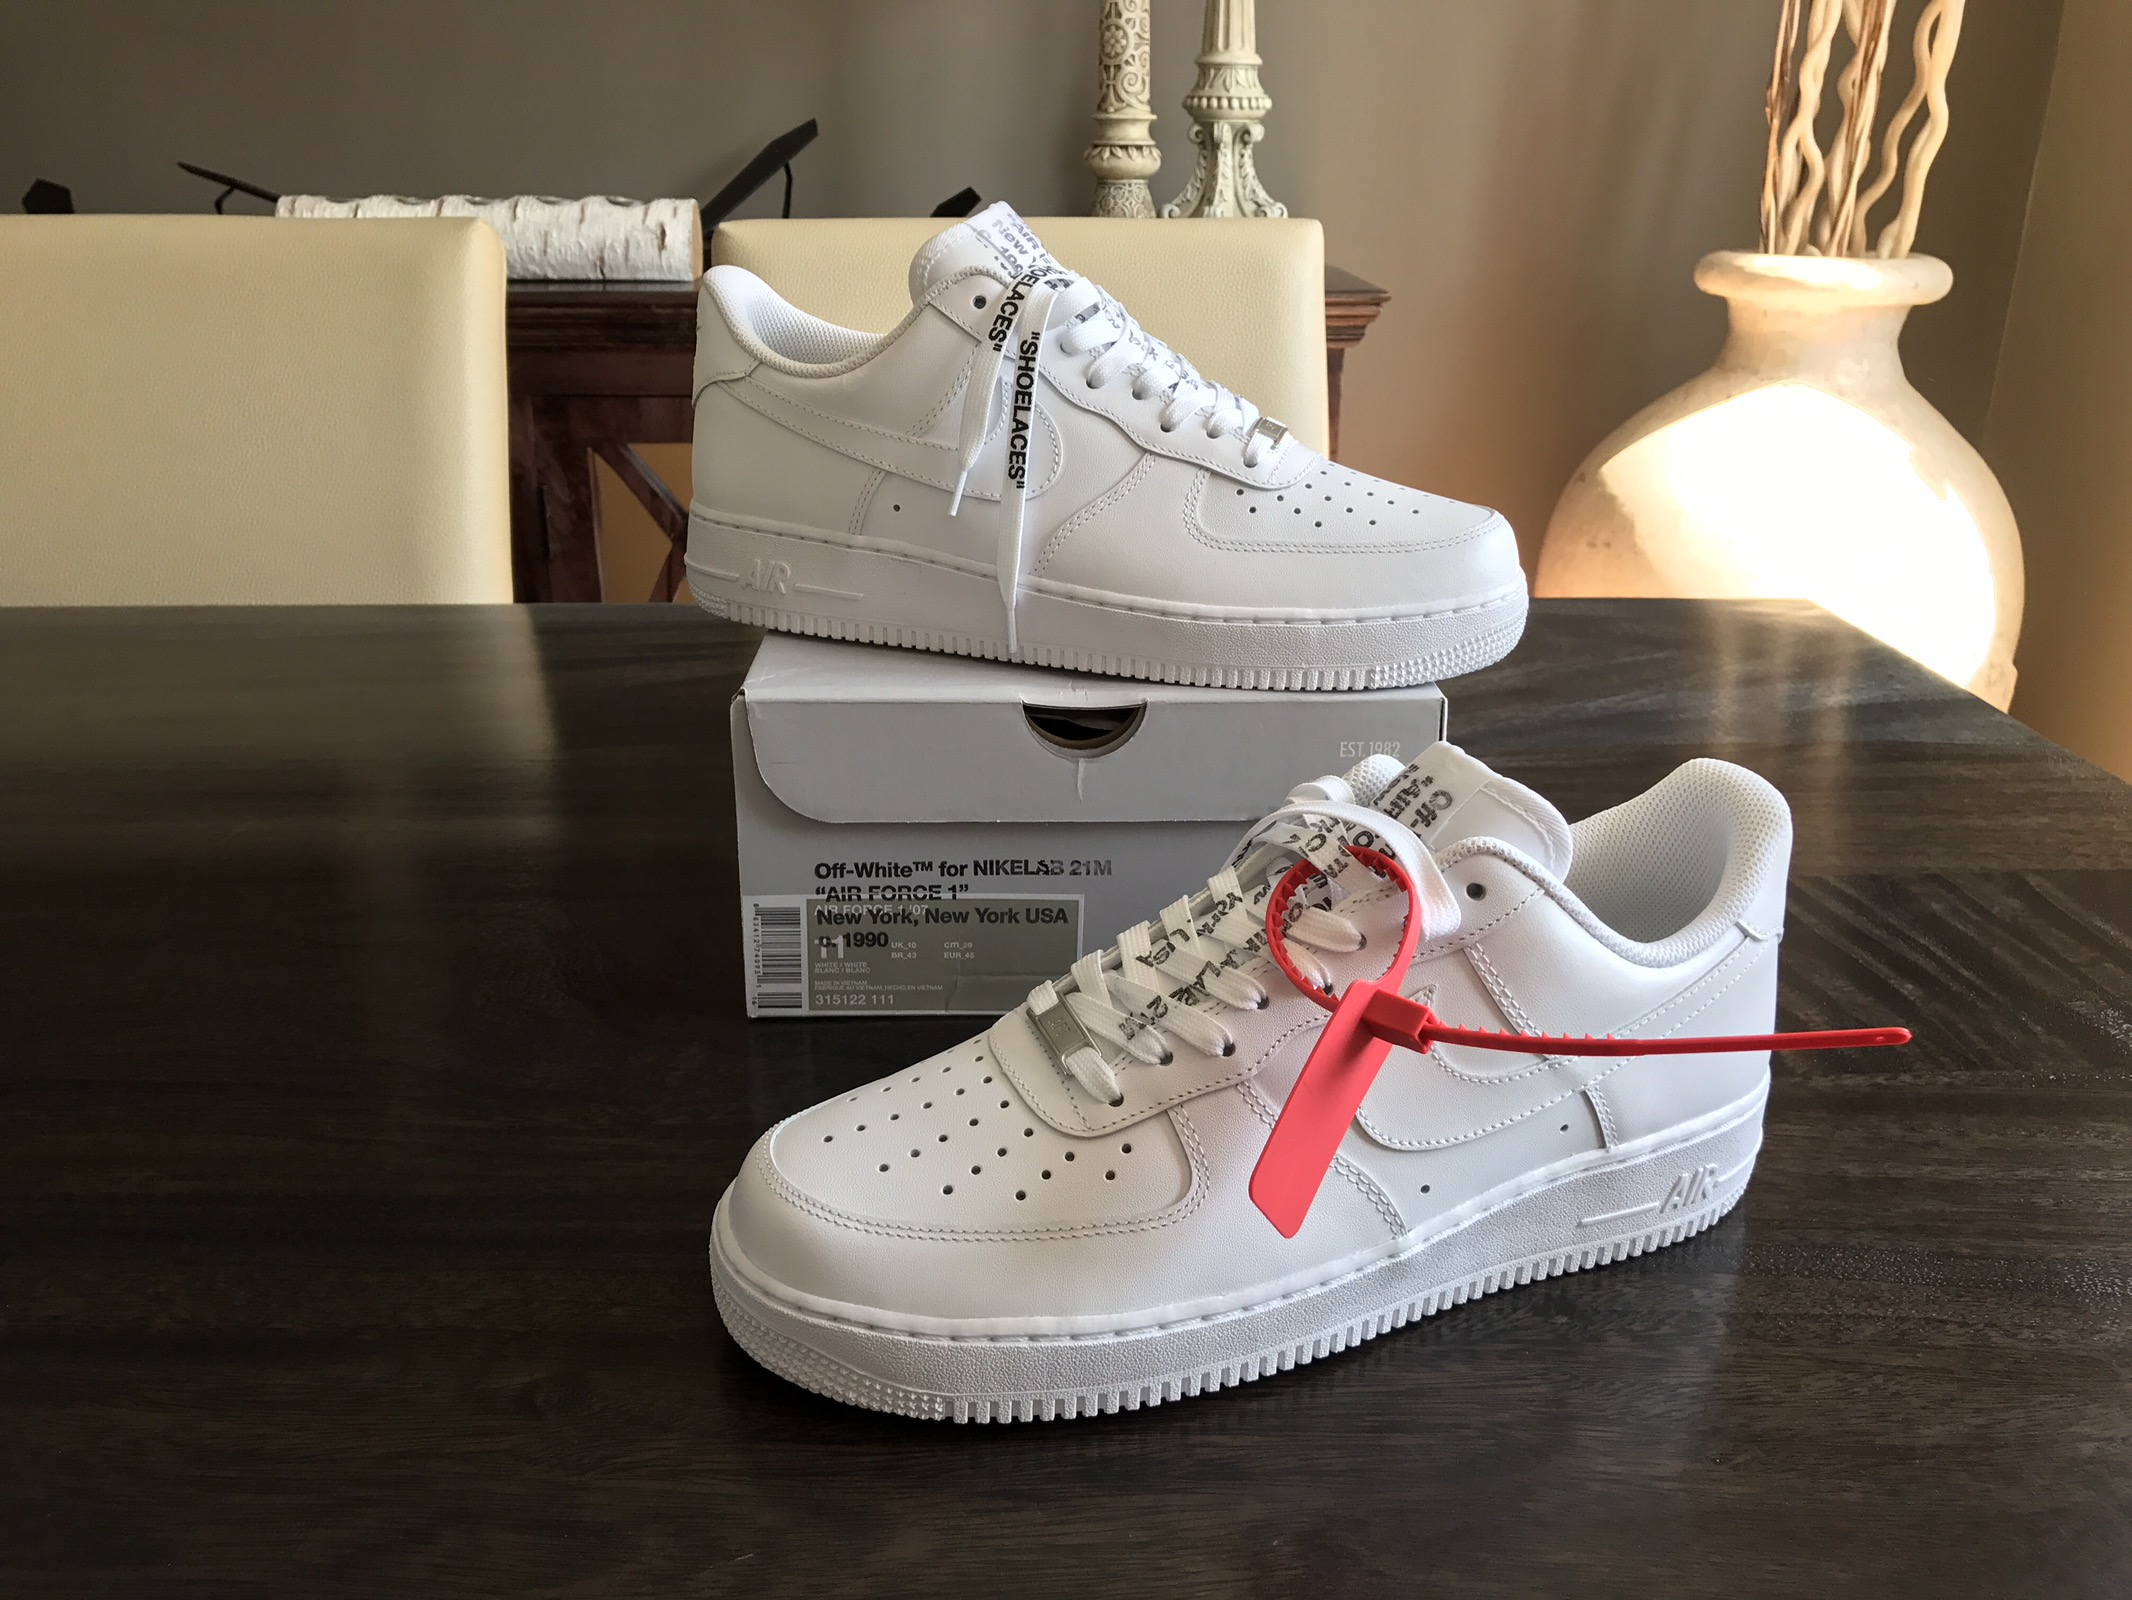 Nike Nike Air Force 1 Off White X Nikelab 21m Extra Credit Af1